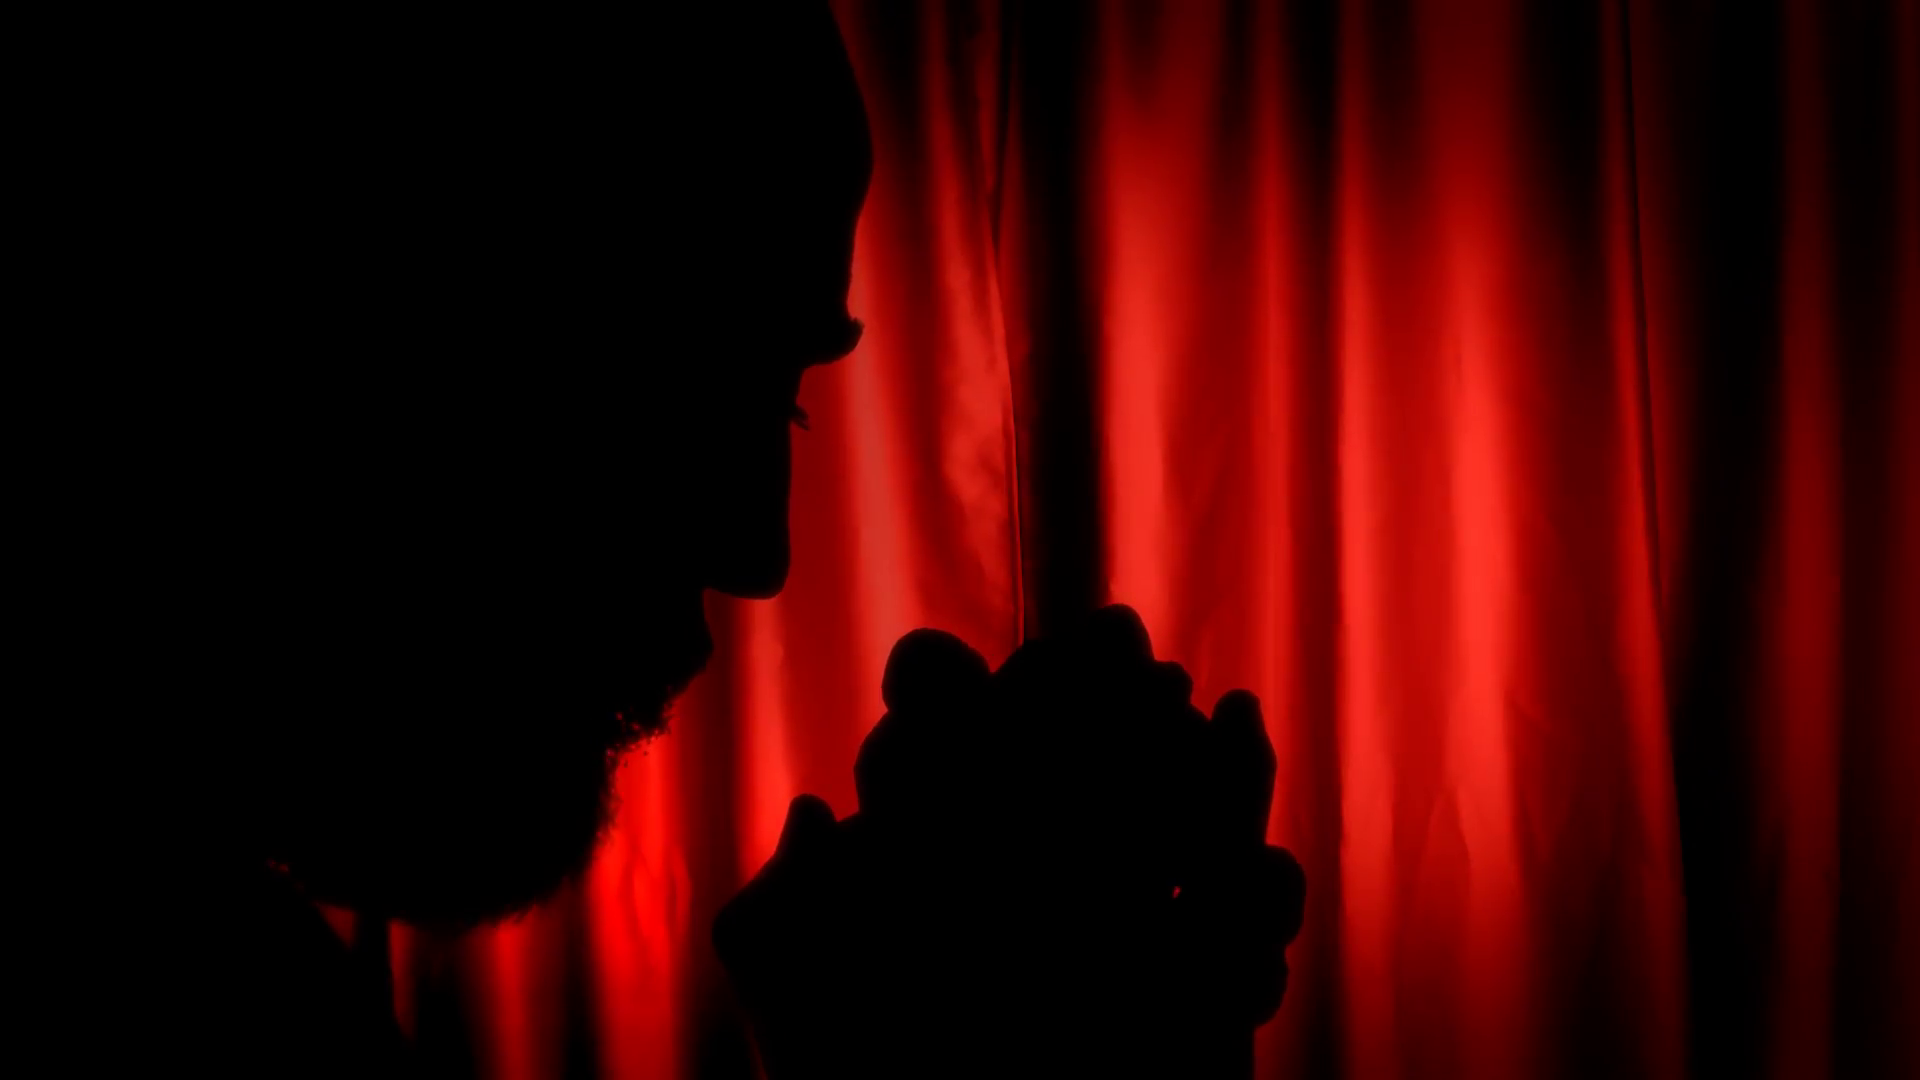 1920x1080 Silhouette Man Praying Red Curtain. Man Praying God